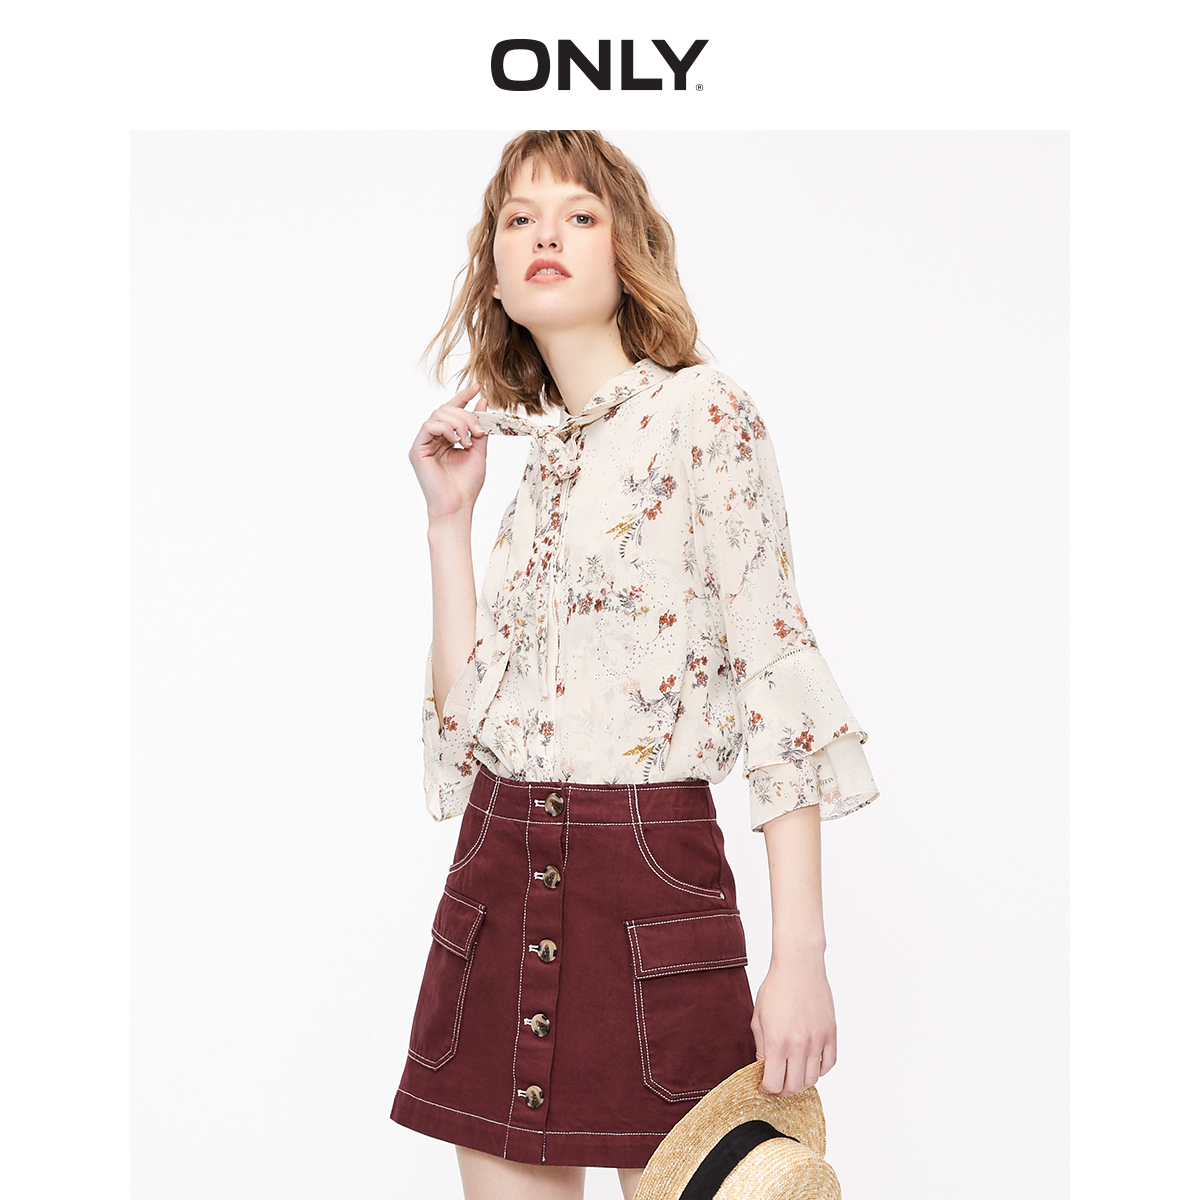 ONLY Women's Loose Fit Floral Bowknot Chiffon Shirt   119231516